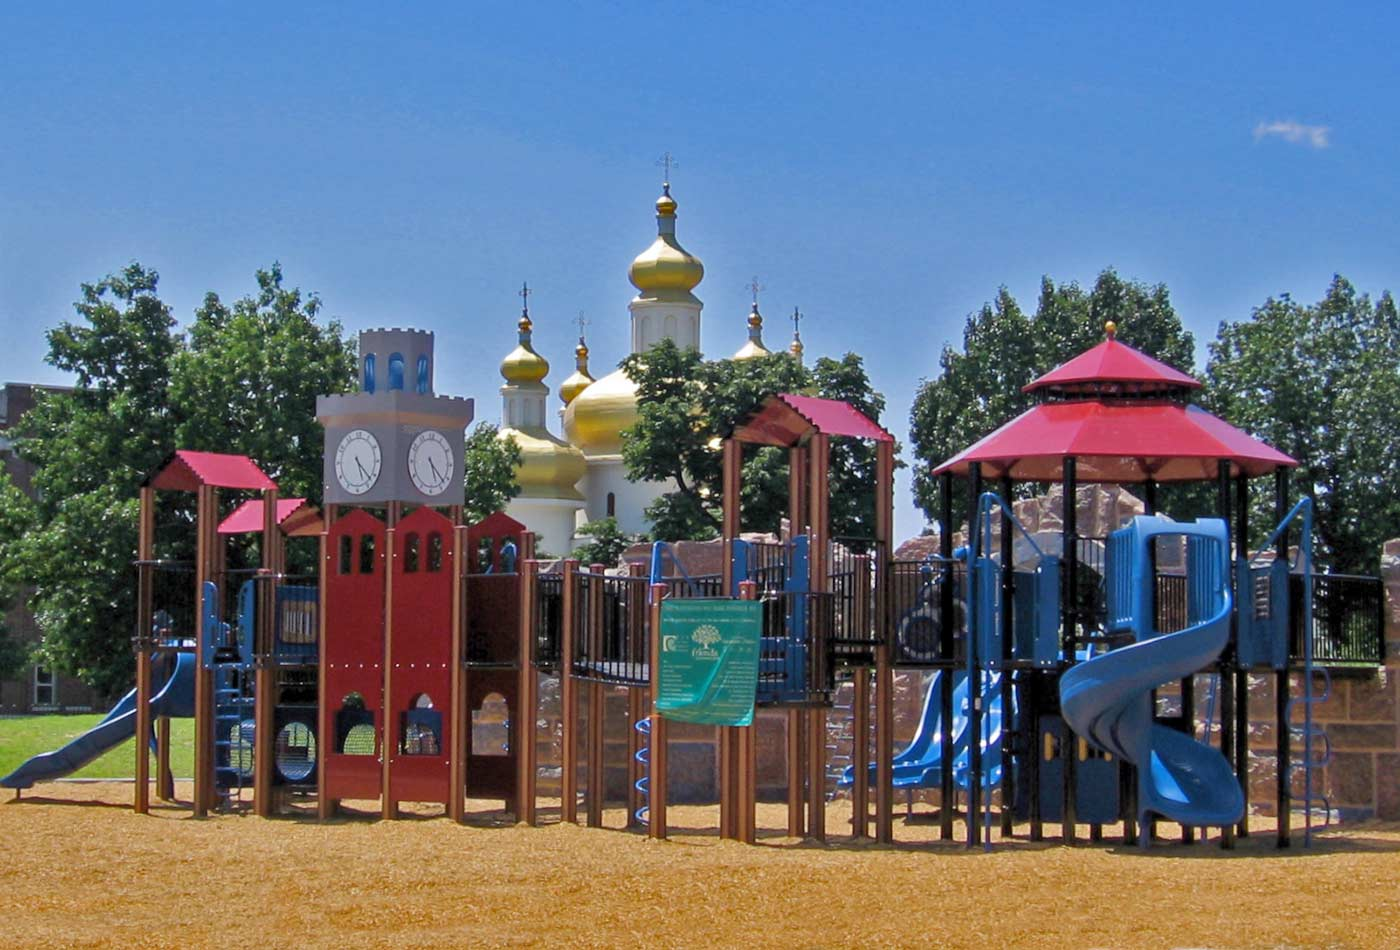 Playground in Patterson Park, Baltimore, Maryland.